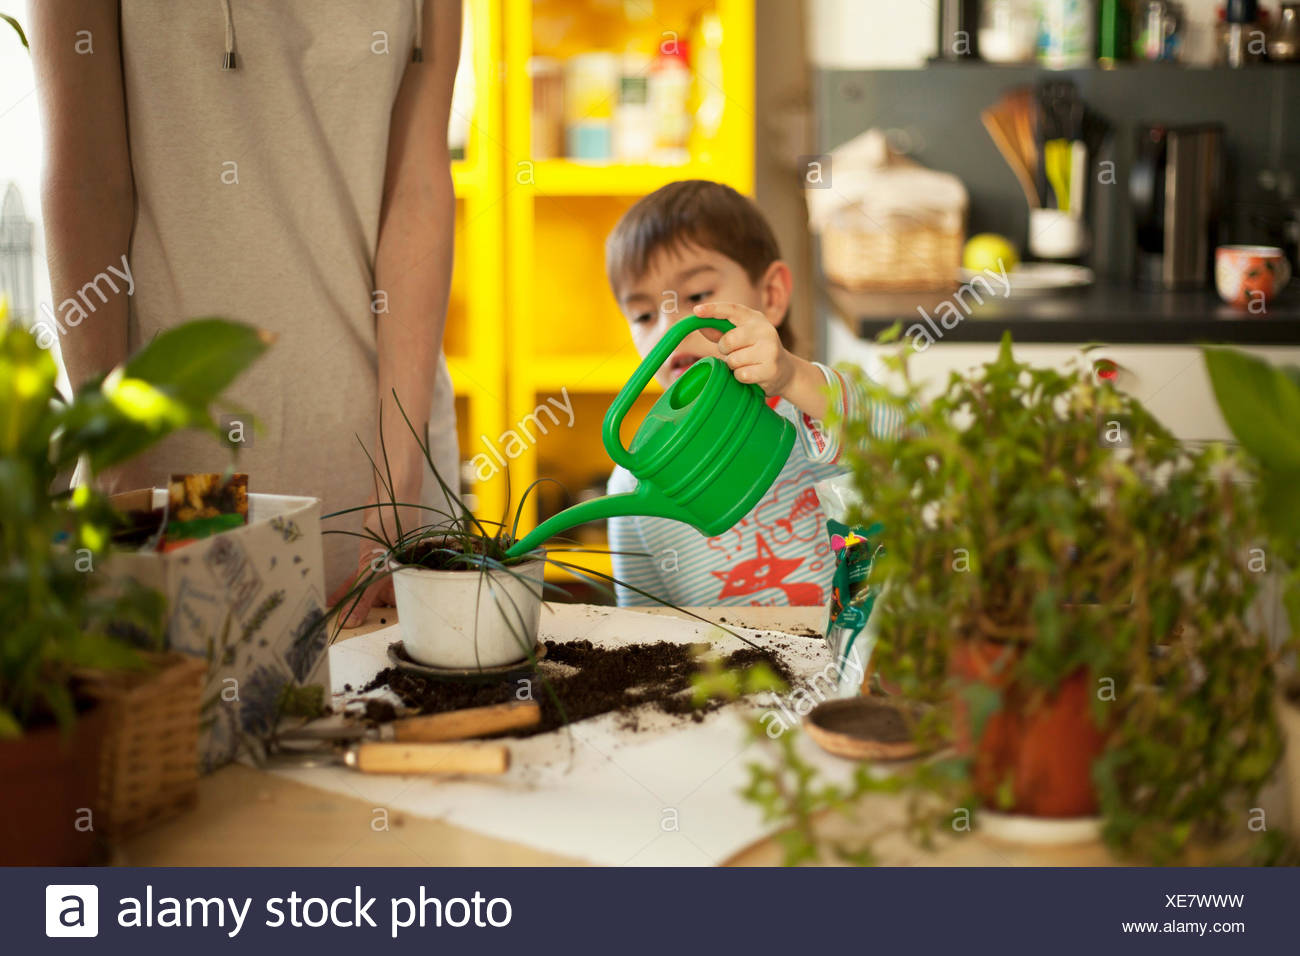 Boy watering pot plants at kitchen table - Stock Image